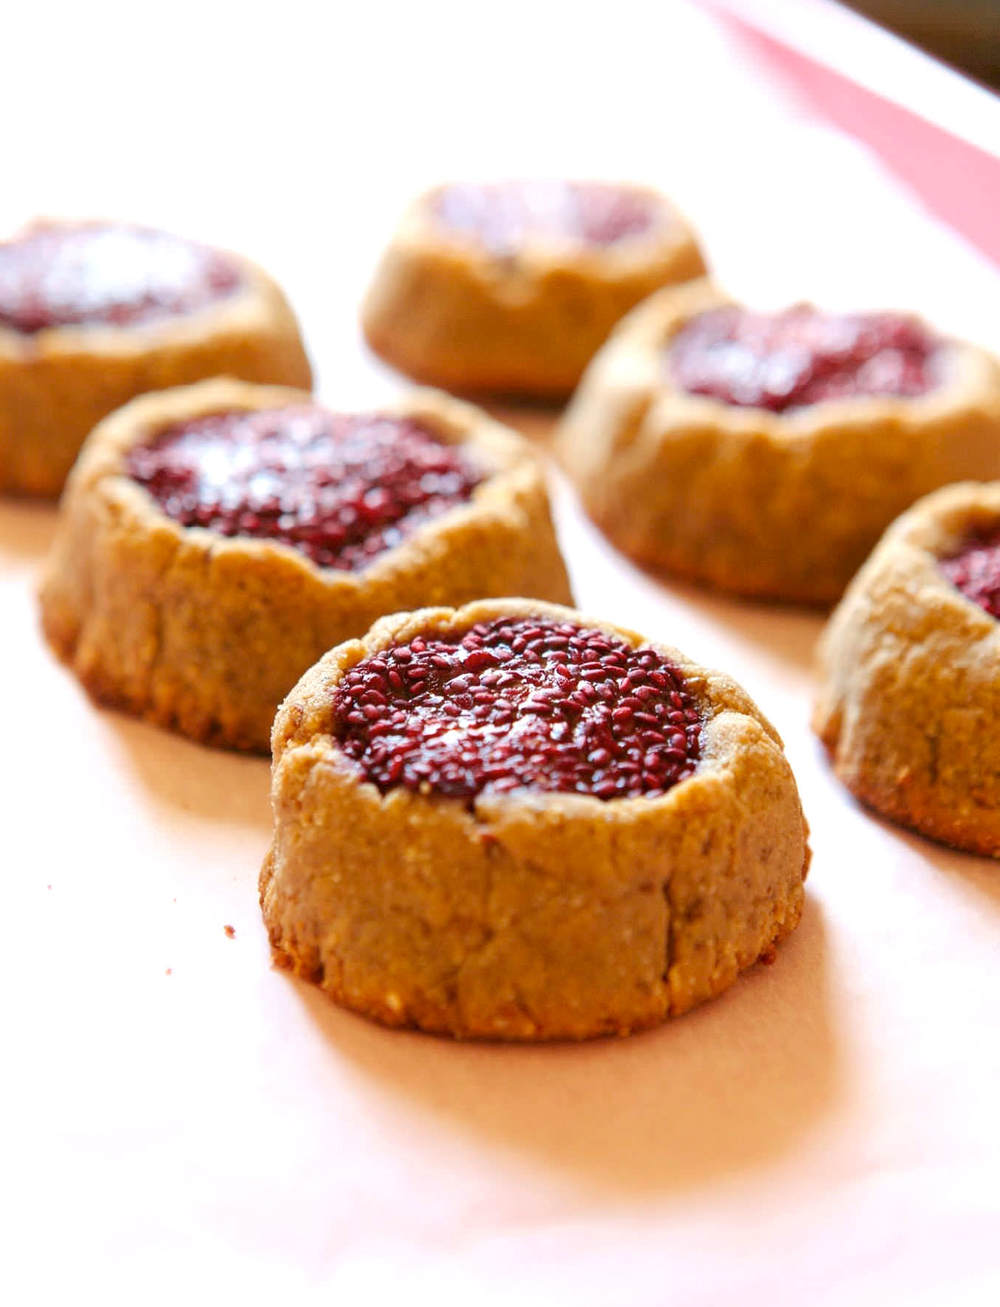 Peanut Butter & Jelly Cookies....the healthy recipe!